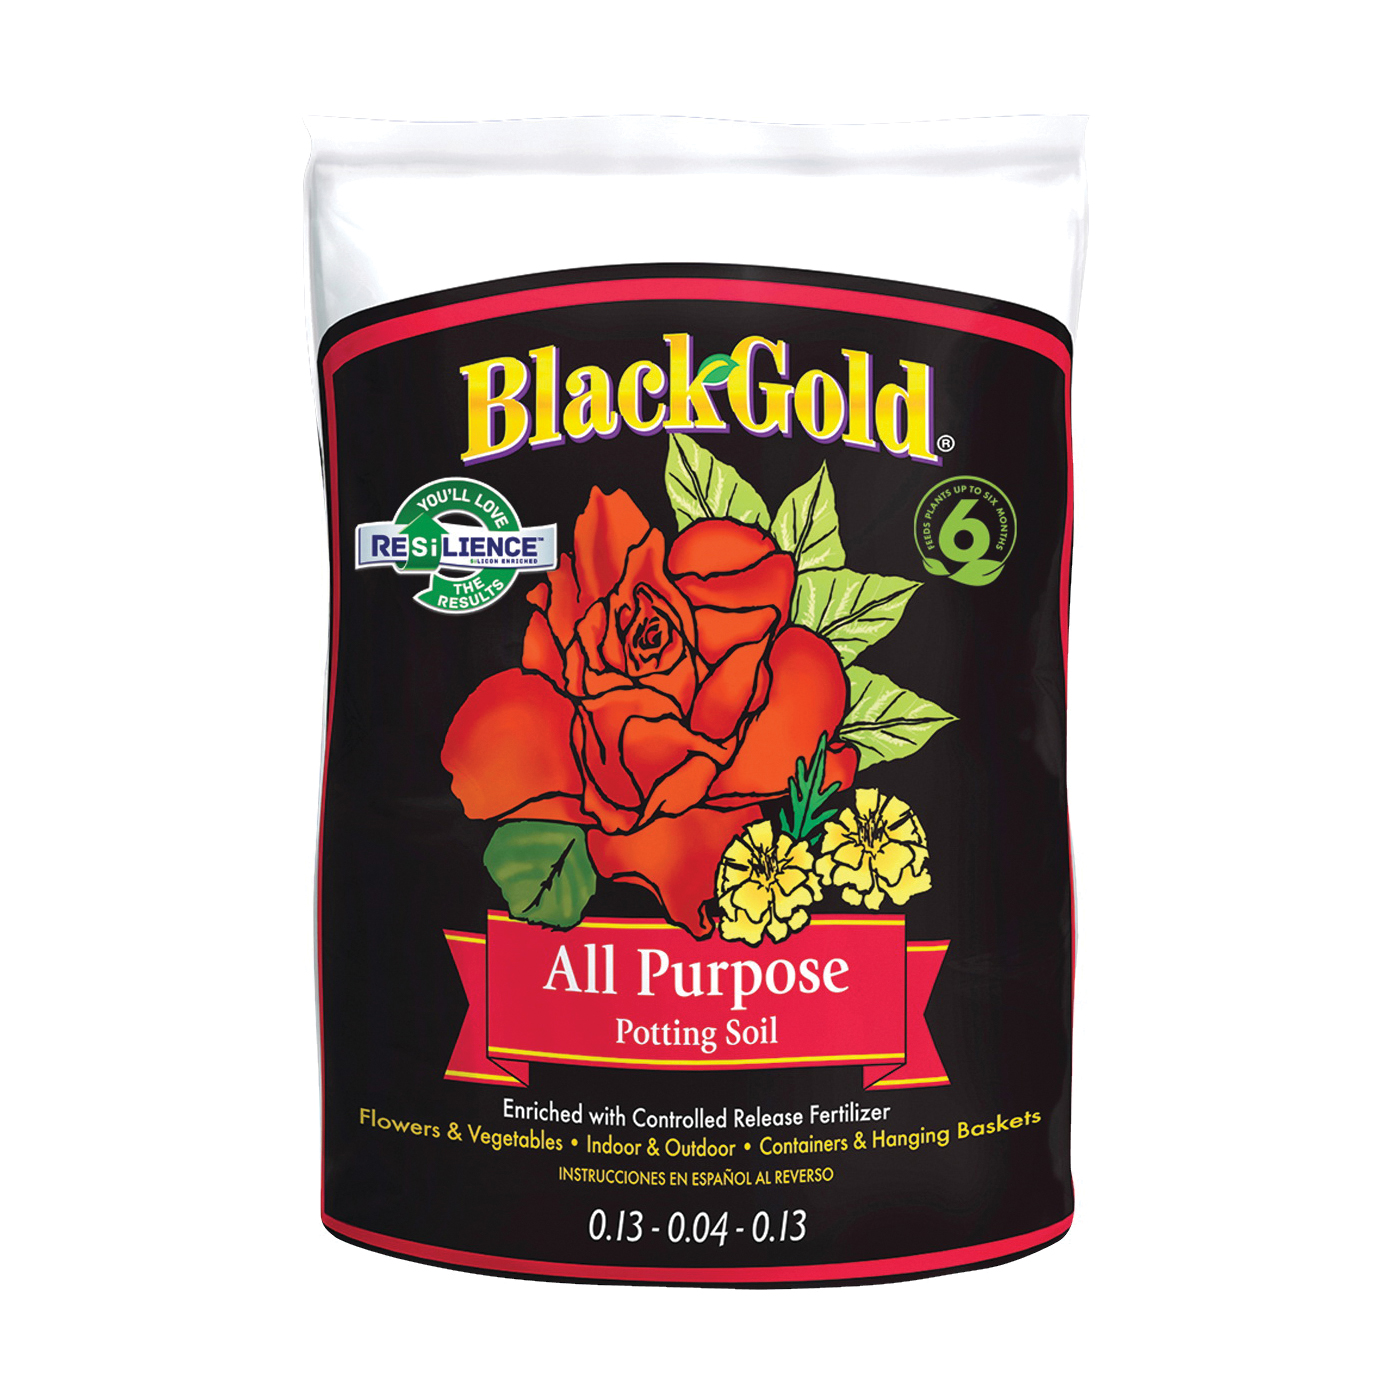 Picture of sun gro BLACK GOLD 1410102 16.0 QT P Potting Mix, Granular, Brown/Earthy, 120 Package, Bag